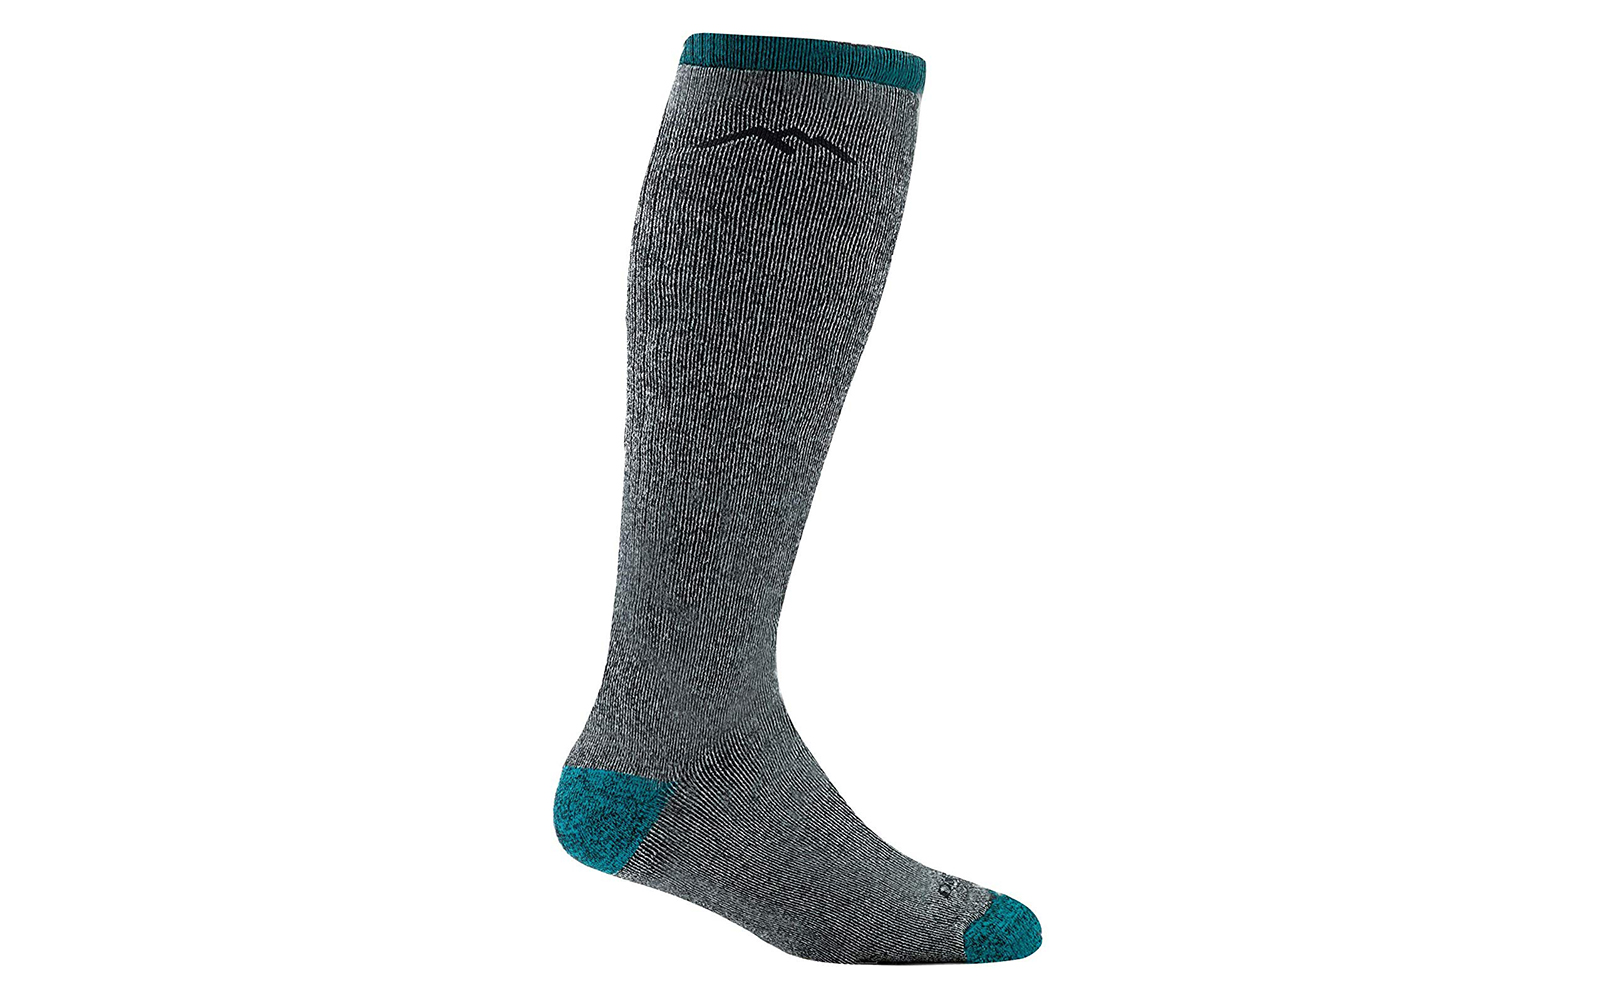 I went skiing during a snowstorm in jackson hole and these wool socks kept my feet warm